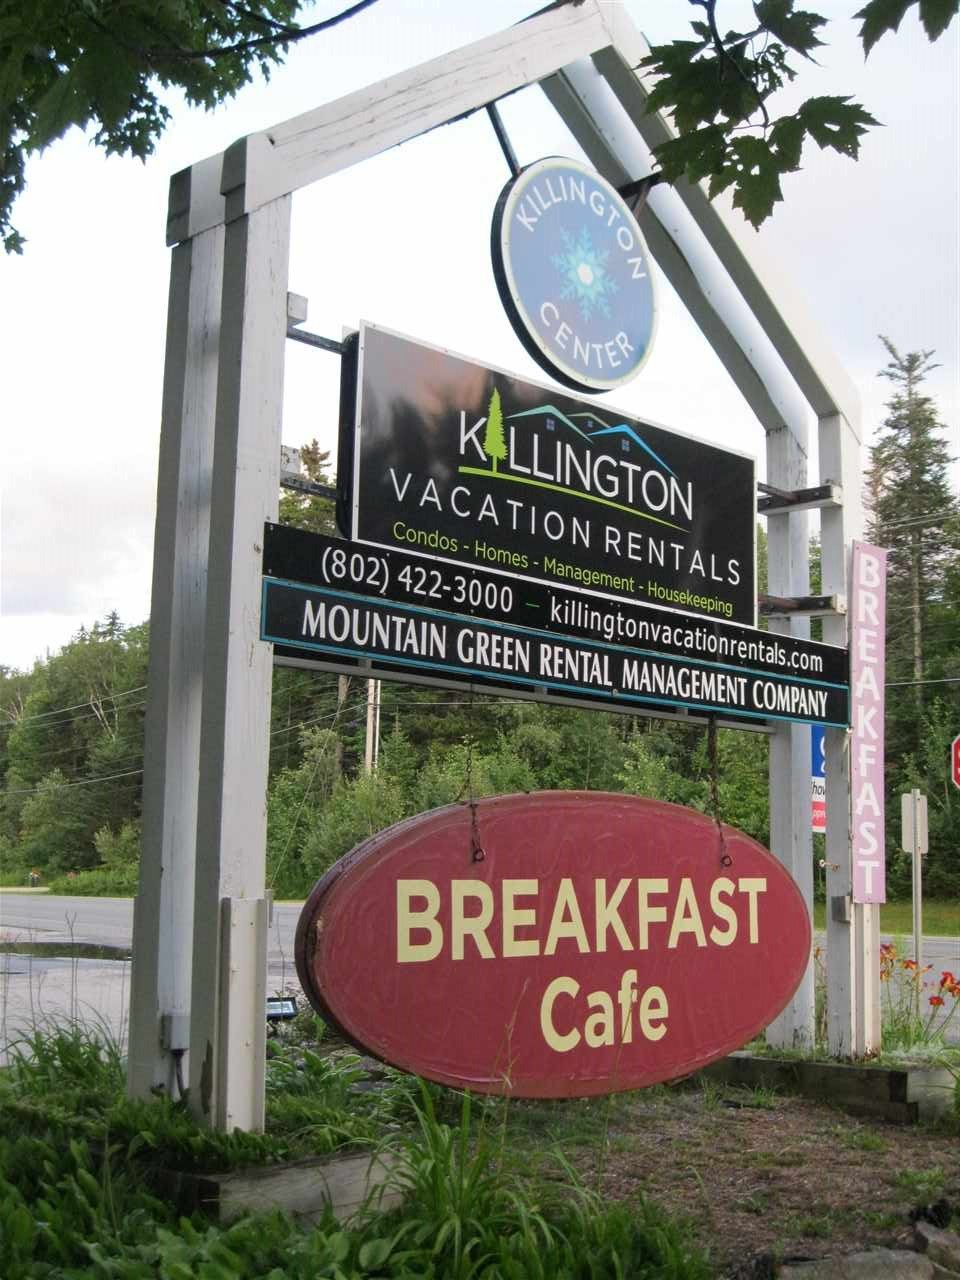 905 Killington Killington Center Inn & Suites